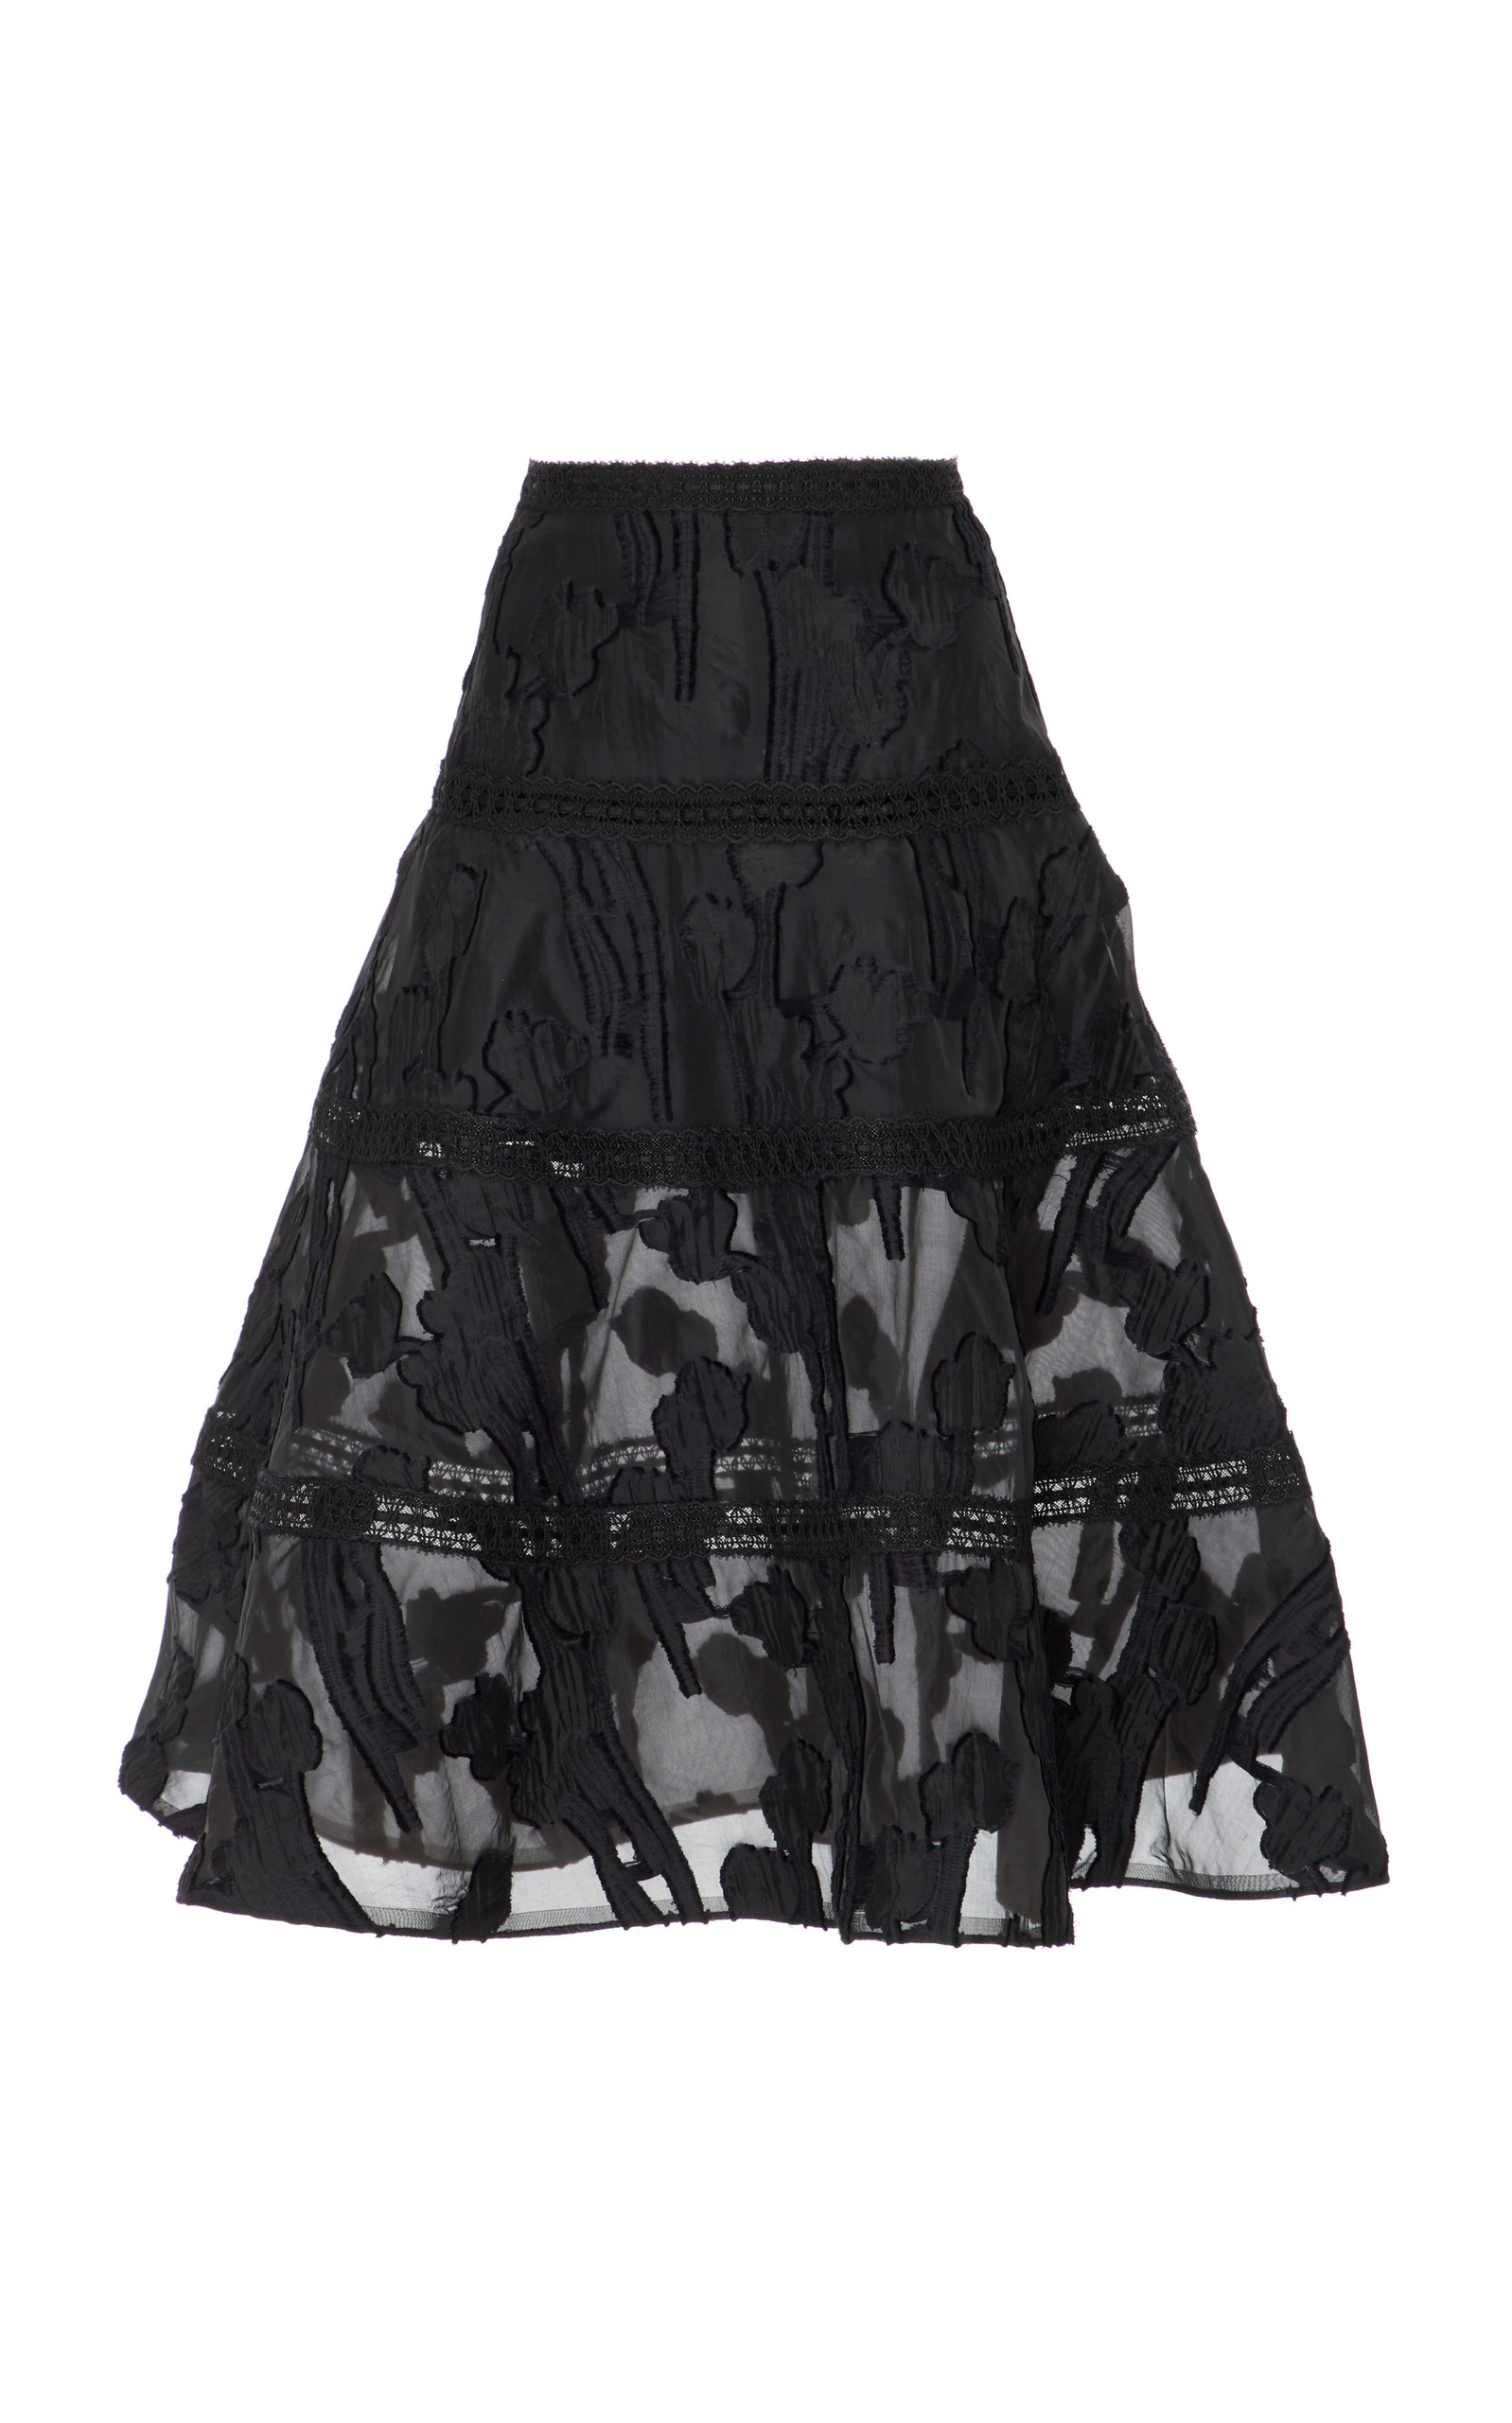 MO Exclusive Dayla A Line Midi Skirt Alexis 100% Authentic Cheap Online Buy Online Outlet Cheap Sale Visit New Cheap Sale Online gCo3Im